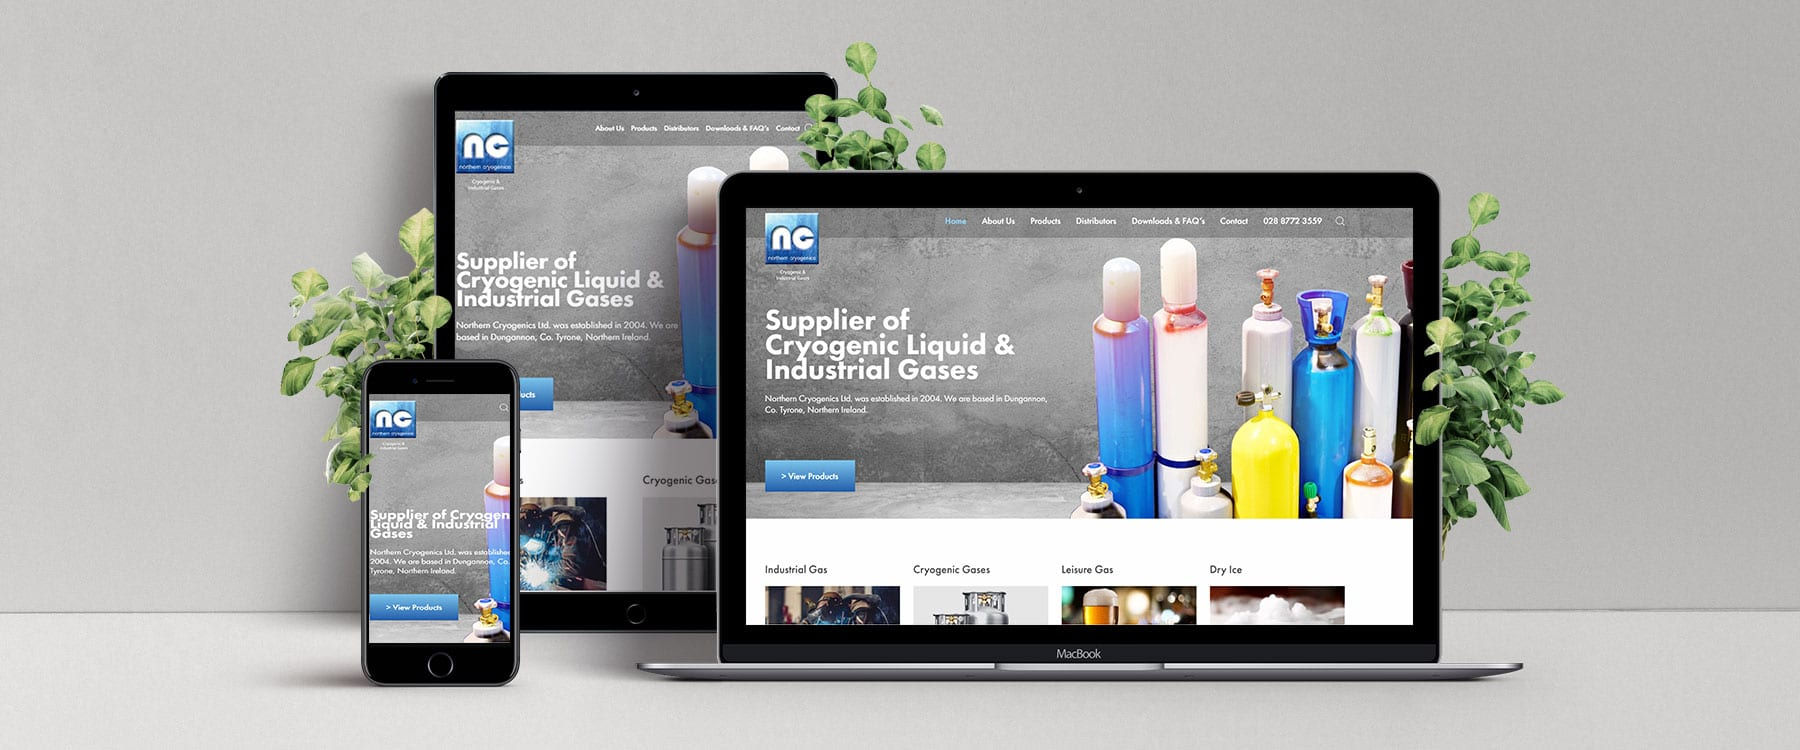 New and Improved Website for Northern Cryogenics Image